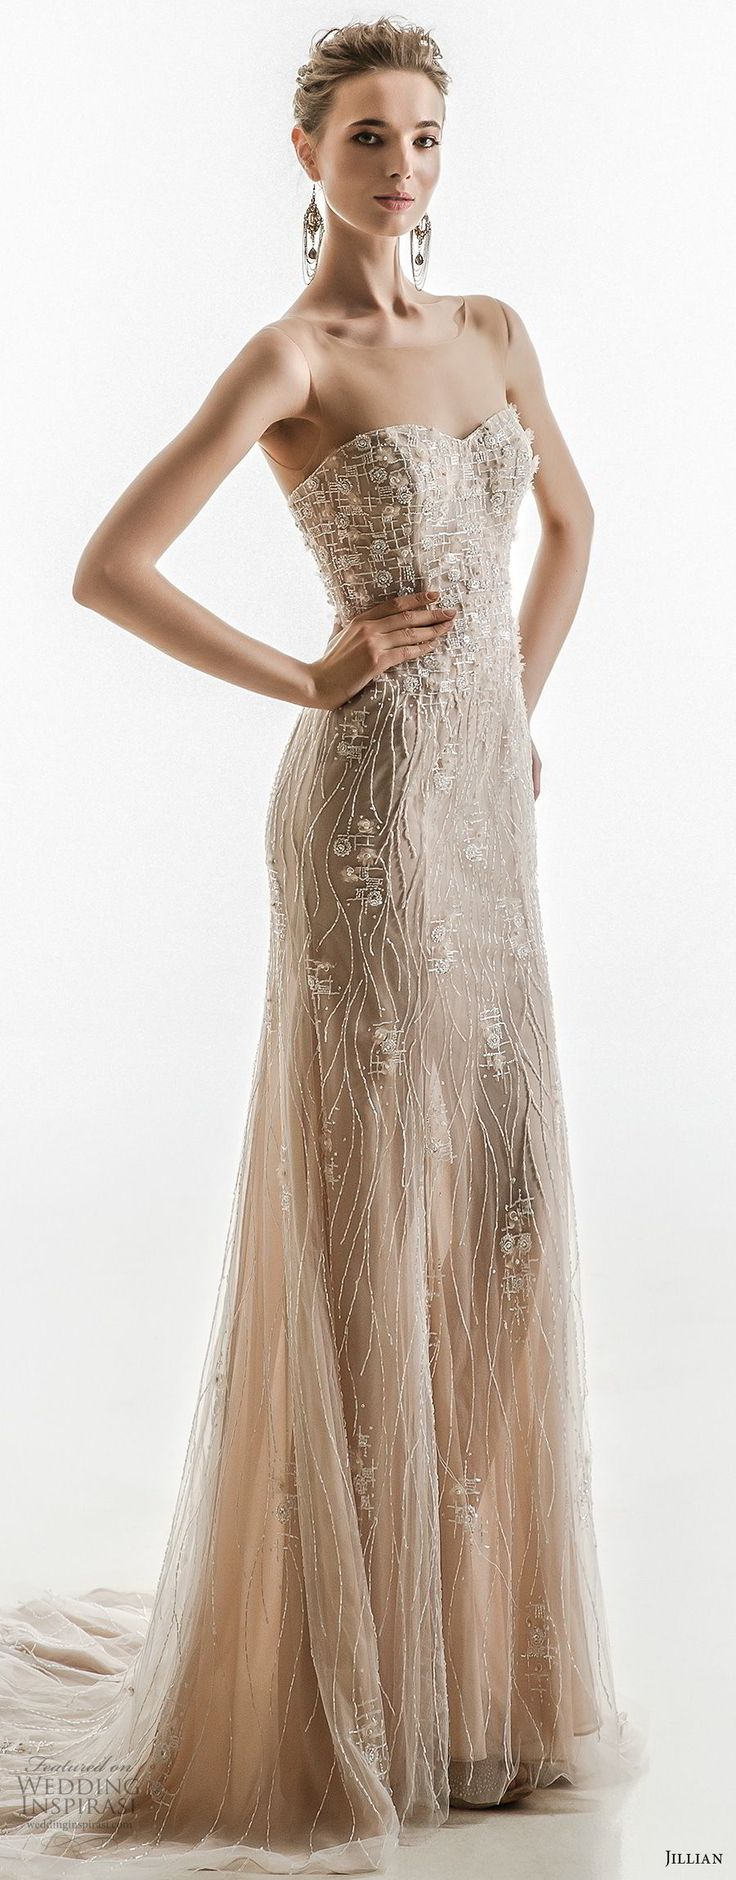 Wedding decorations rose gold october 2018  best Brianaus  images on Pinterest  Night out dresses Nice